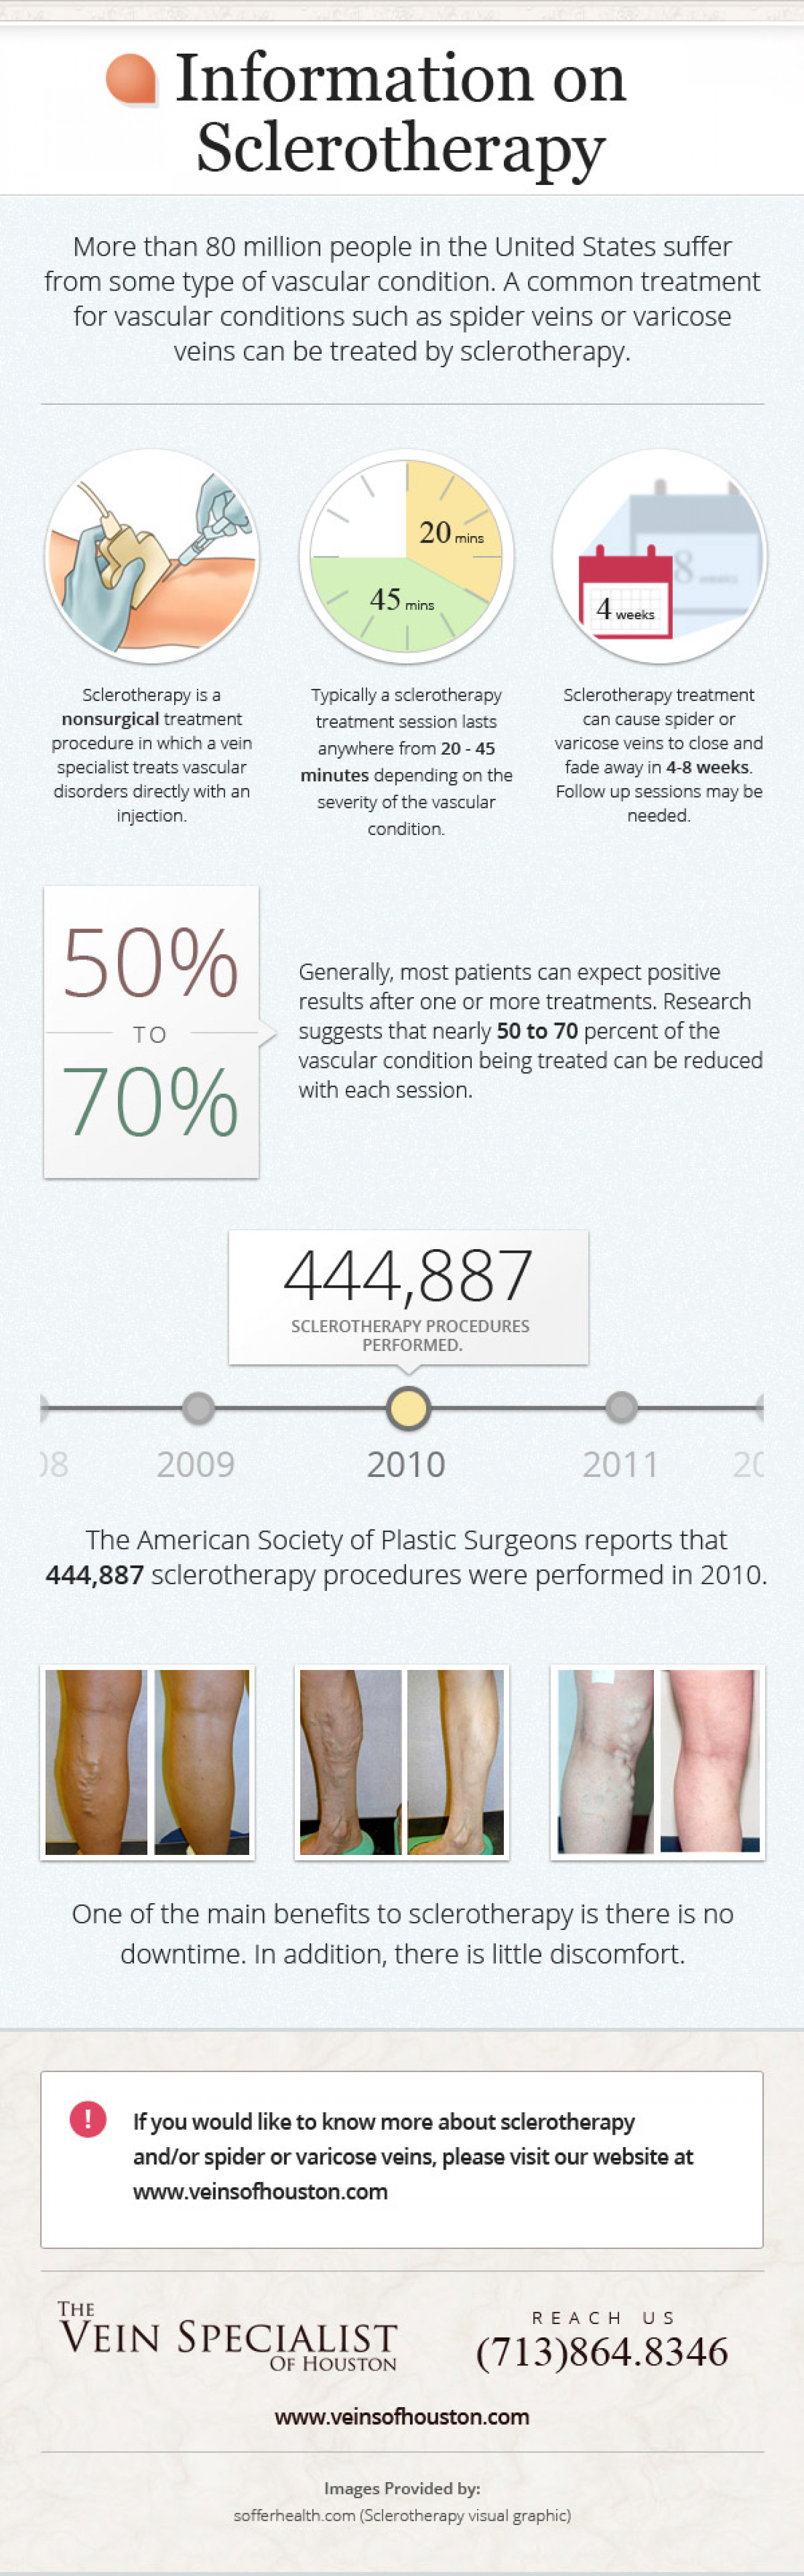 Information on Sclerotherapy Infographic